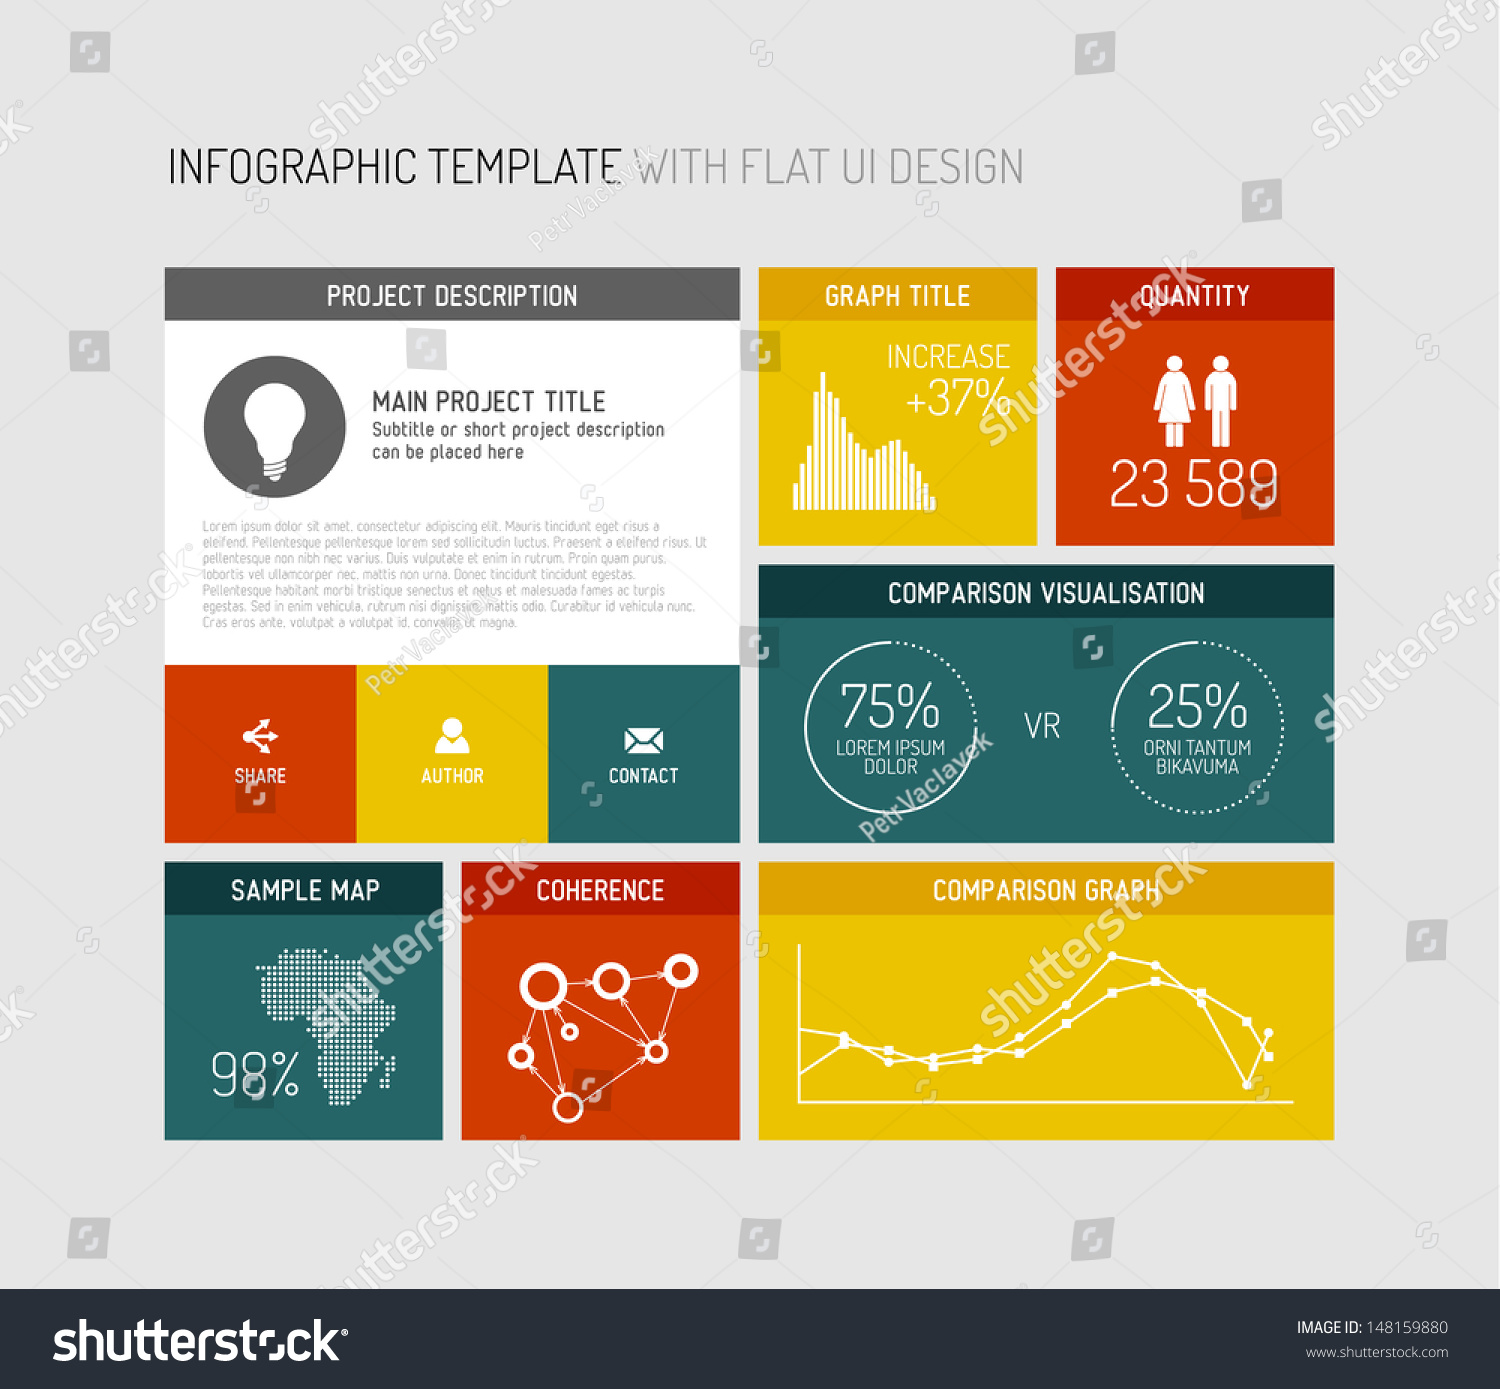 Vector flat user interface ui infographic stock vector for User interface design document template